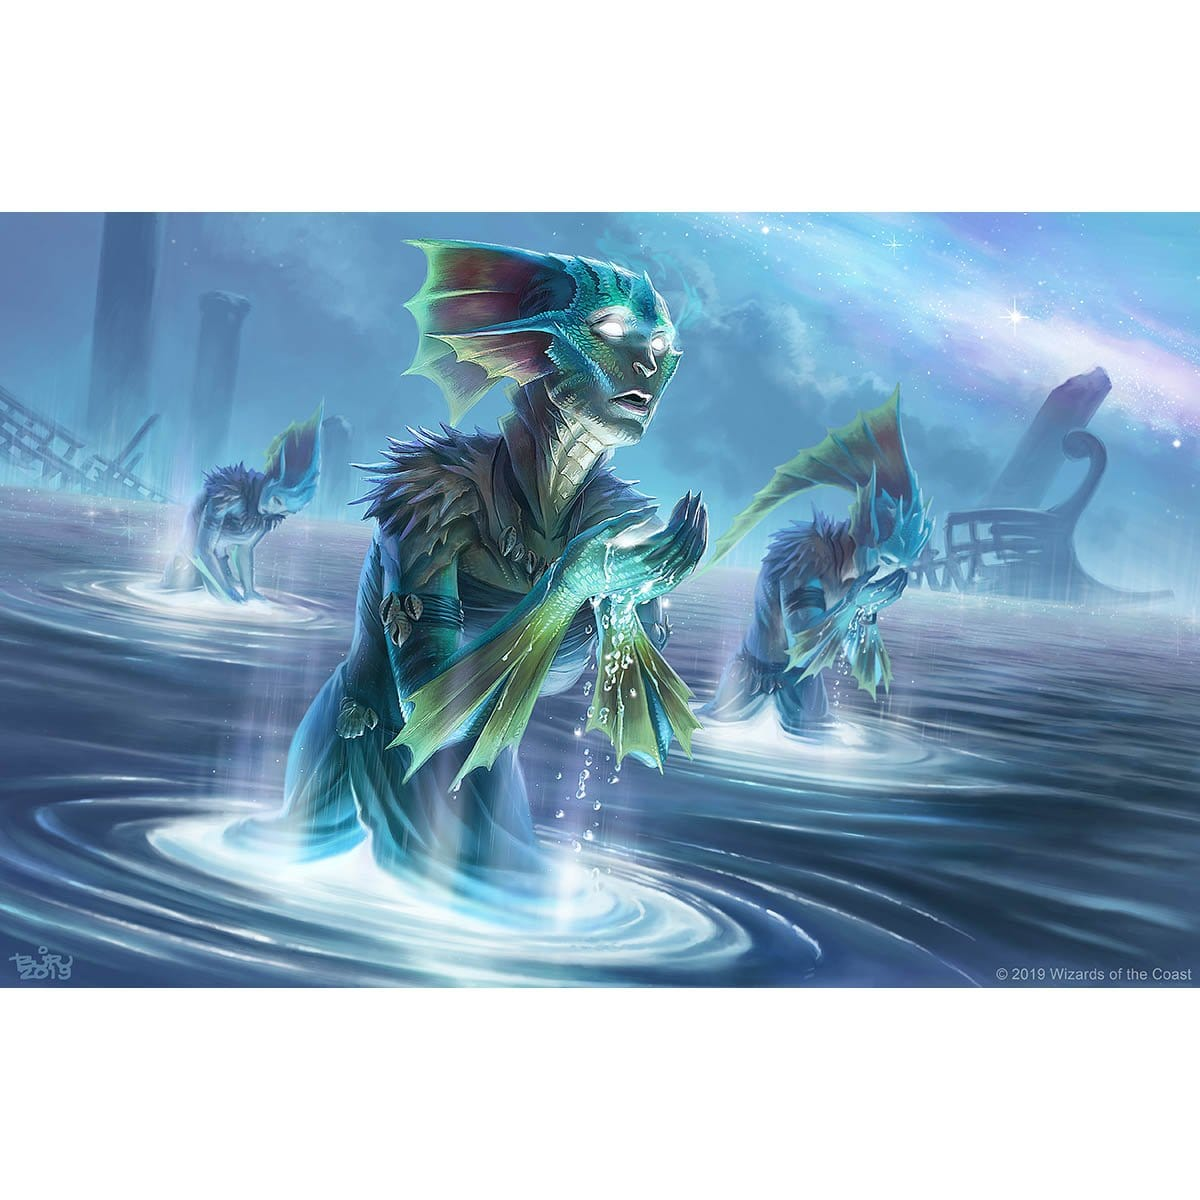 Thirst for Meaning Print - Print - Original Magic Art - Accessories for Magic the Gathering and other card games